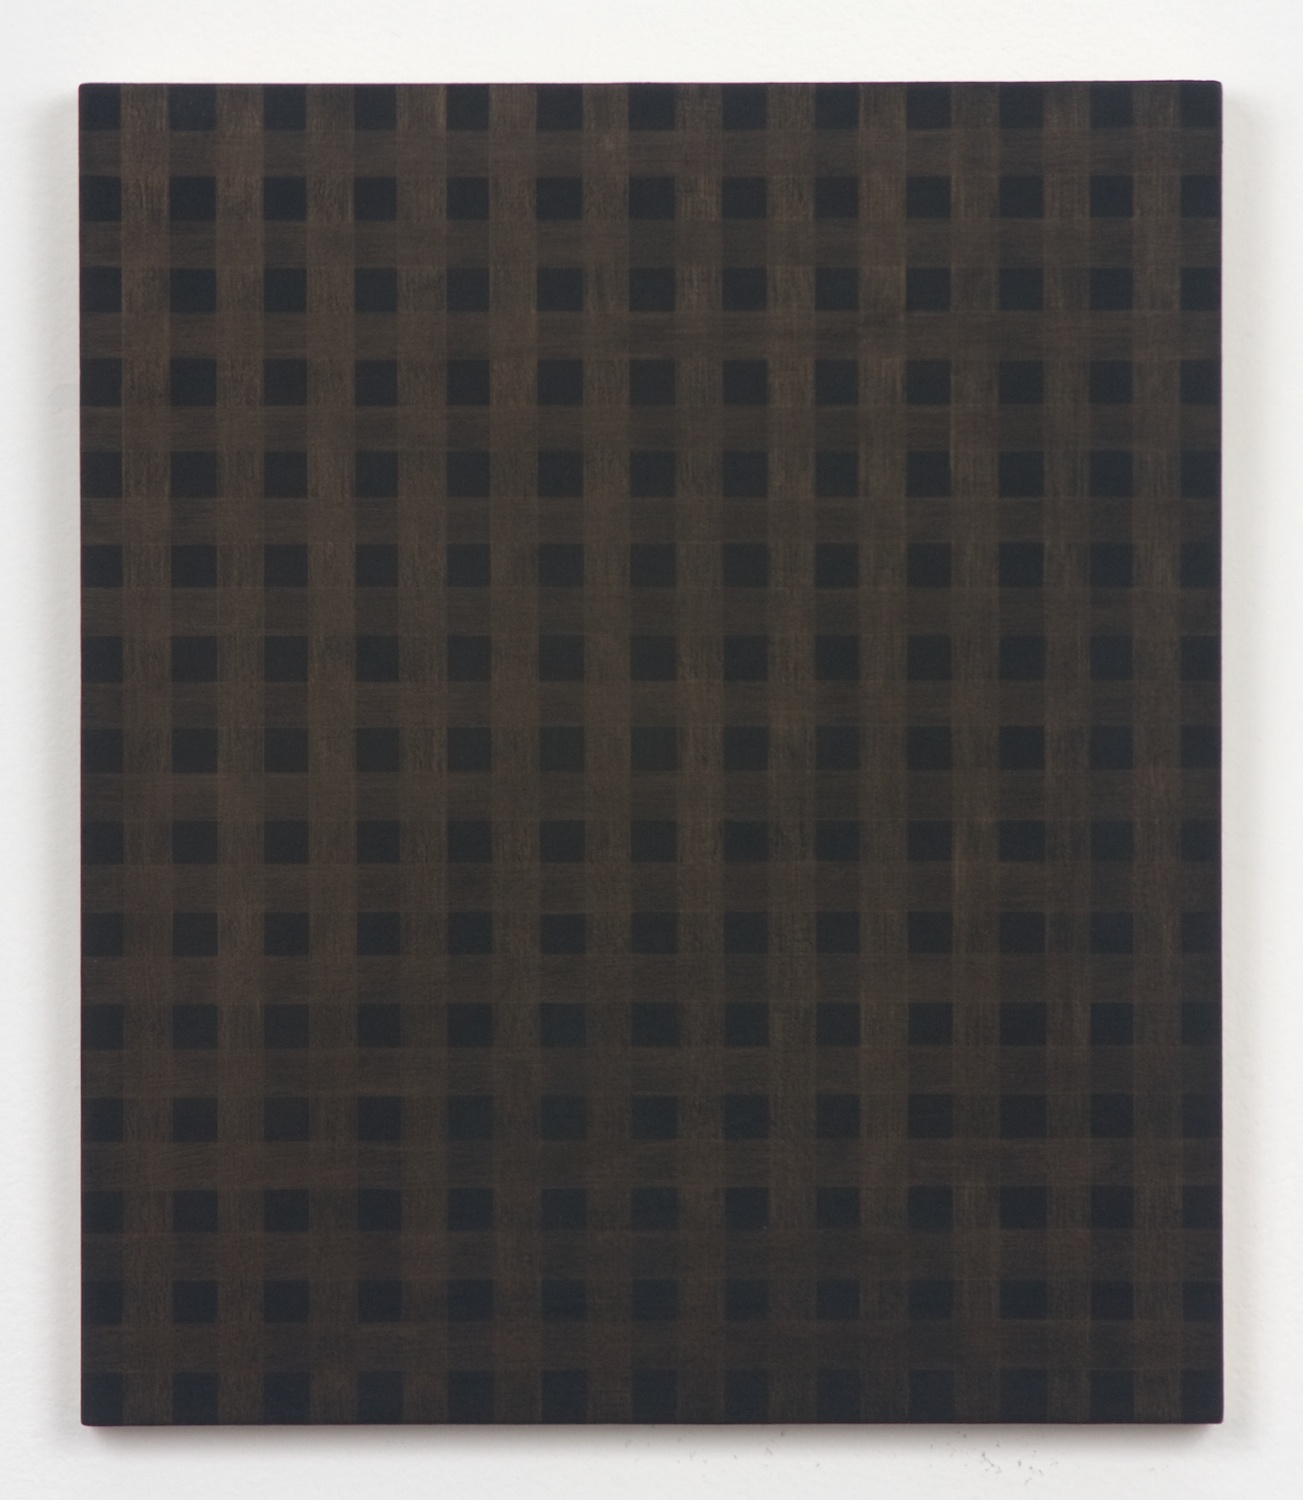 Michelle Grabner  Untitled  2010 Gold and gesso on panel 12h x 10w in MGrab176